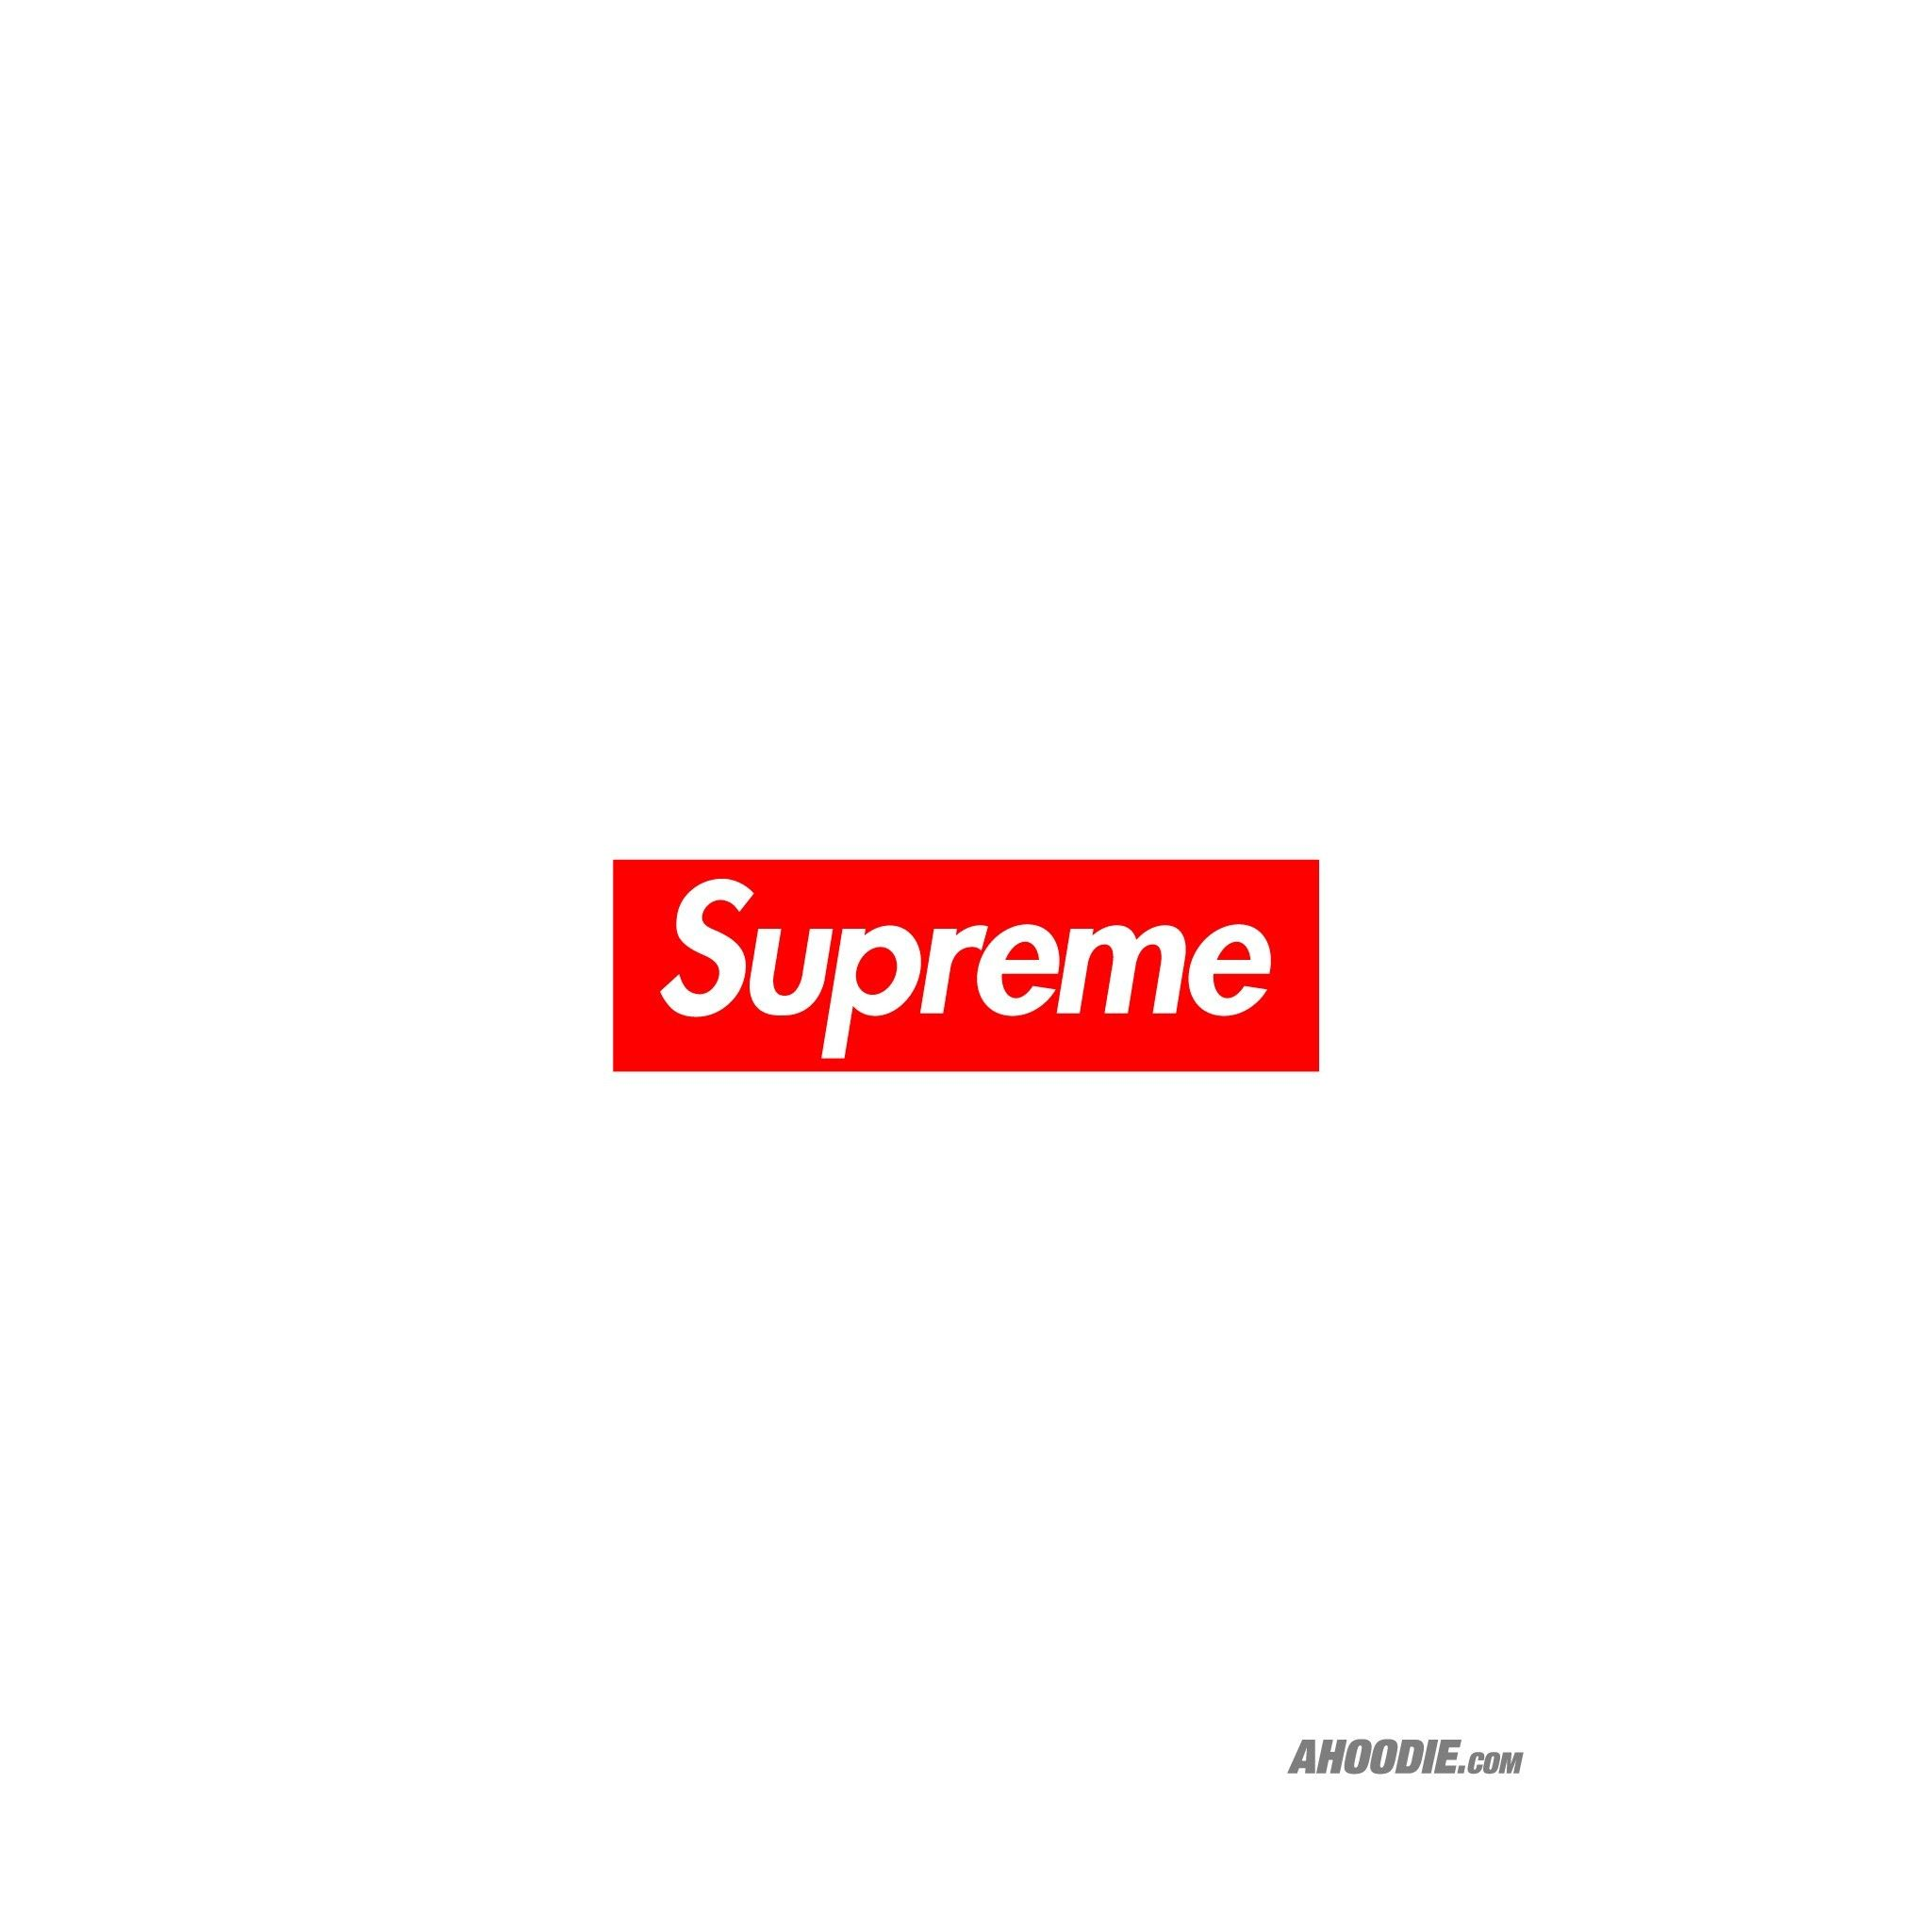 Supreme Mac Wallpapers - Top Free ...